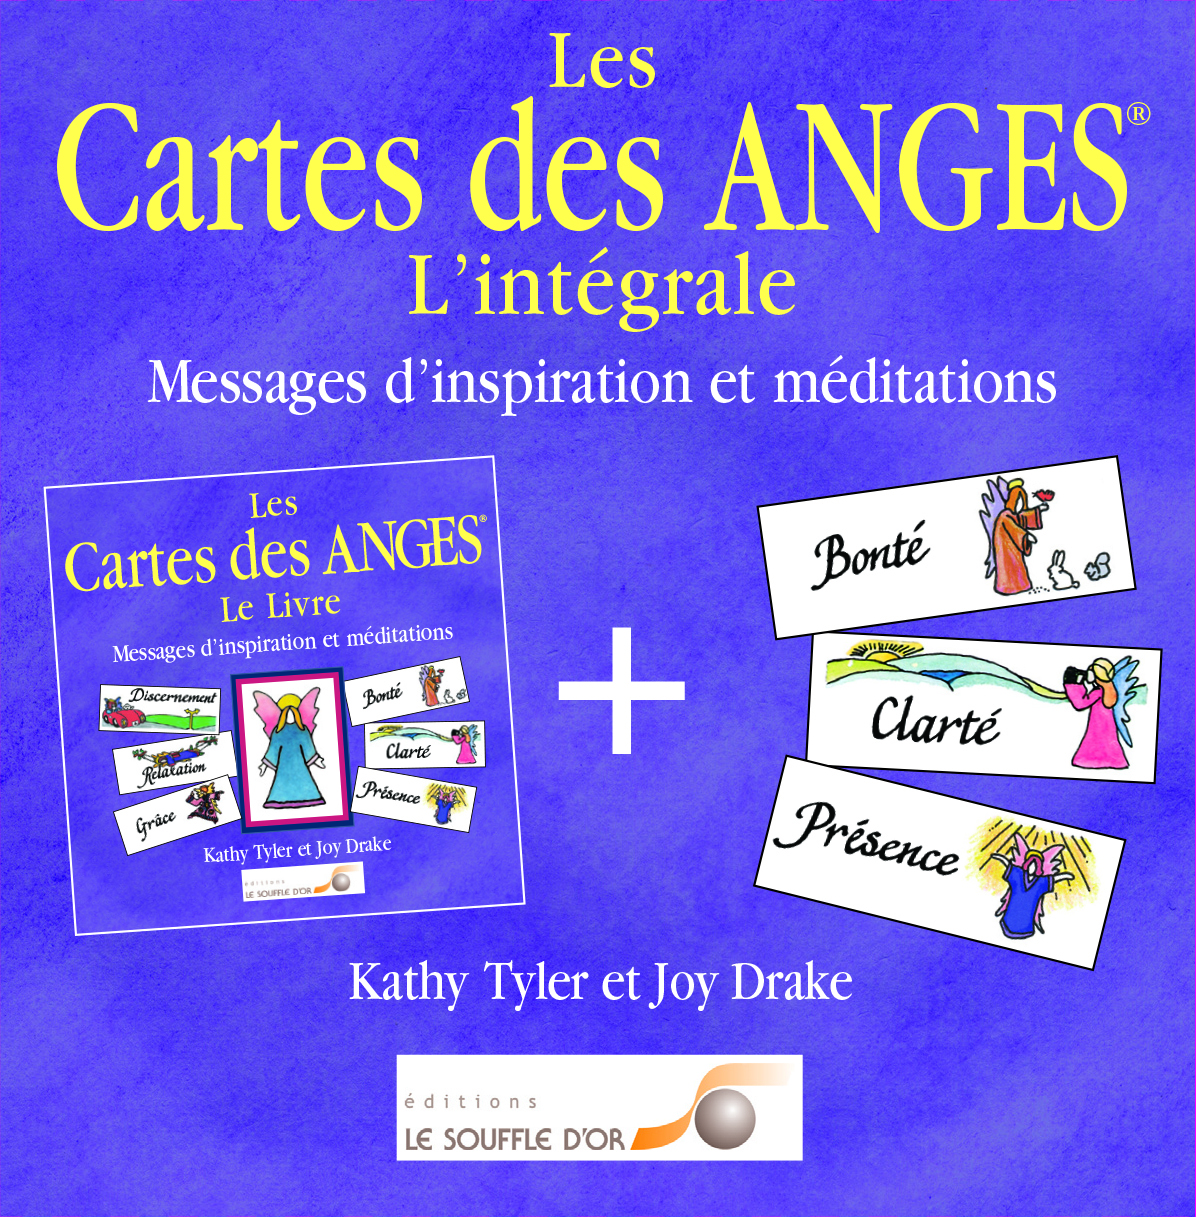 CARTE DES ANGES - L'INTEGRALE